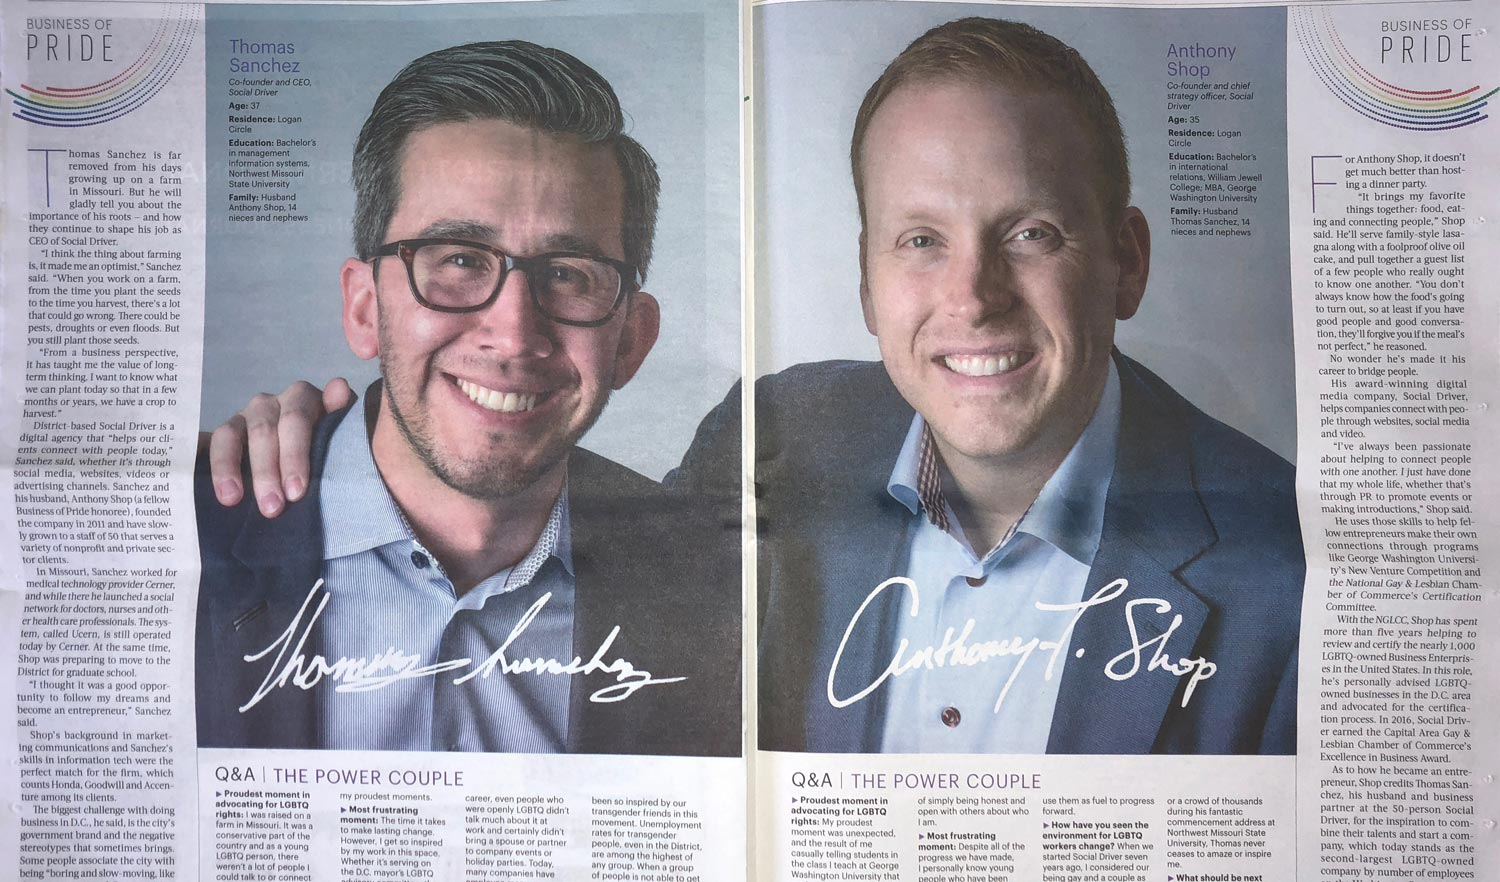 Photo of newspaper spread containing large headshots of CEO Thomas Sanchez and CSO Anthony Shop